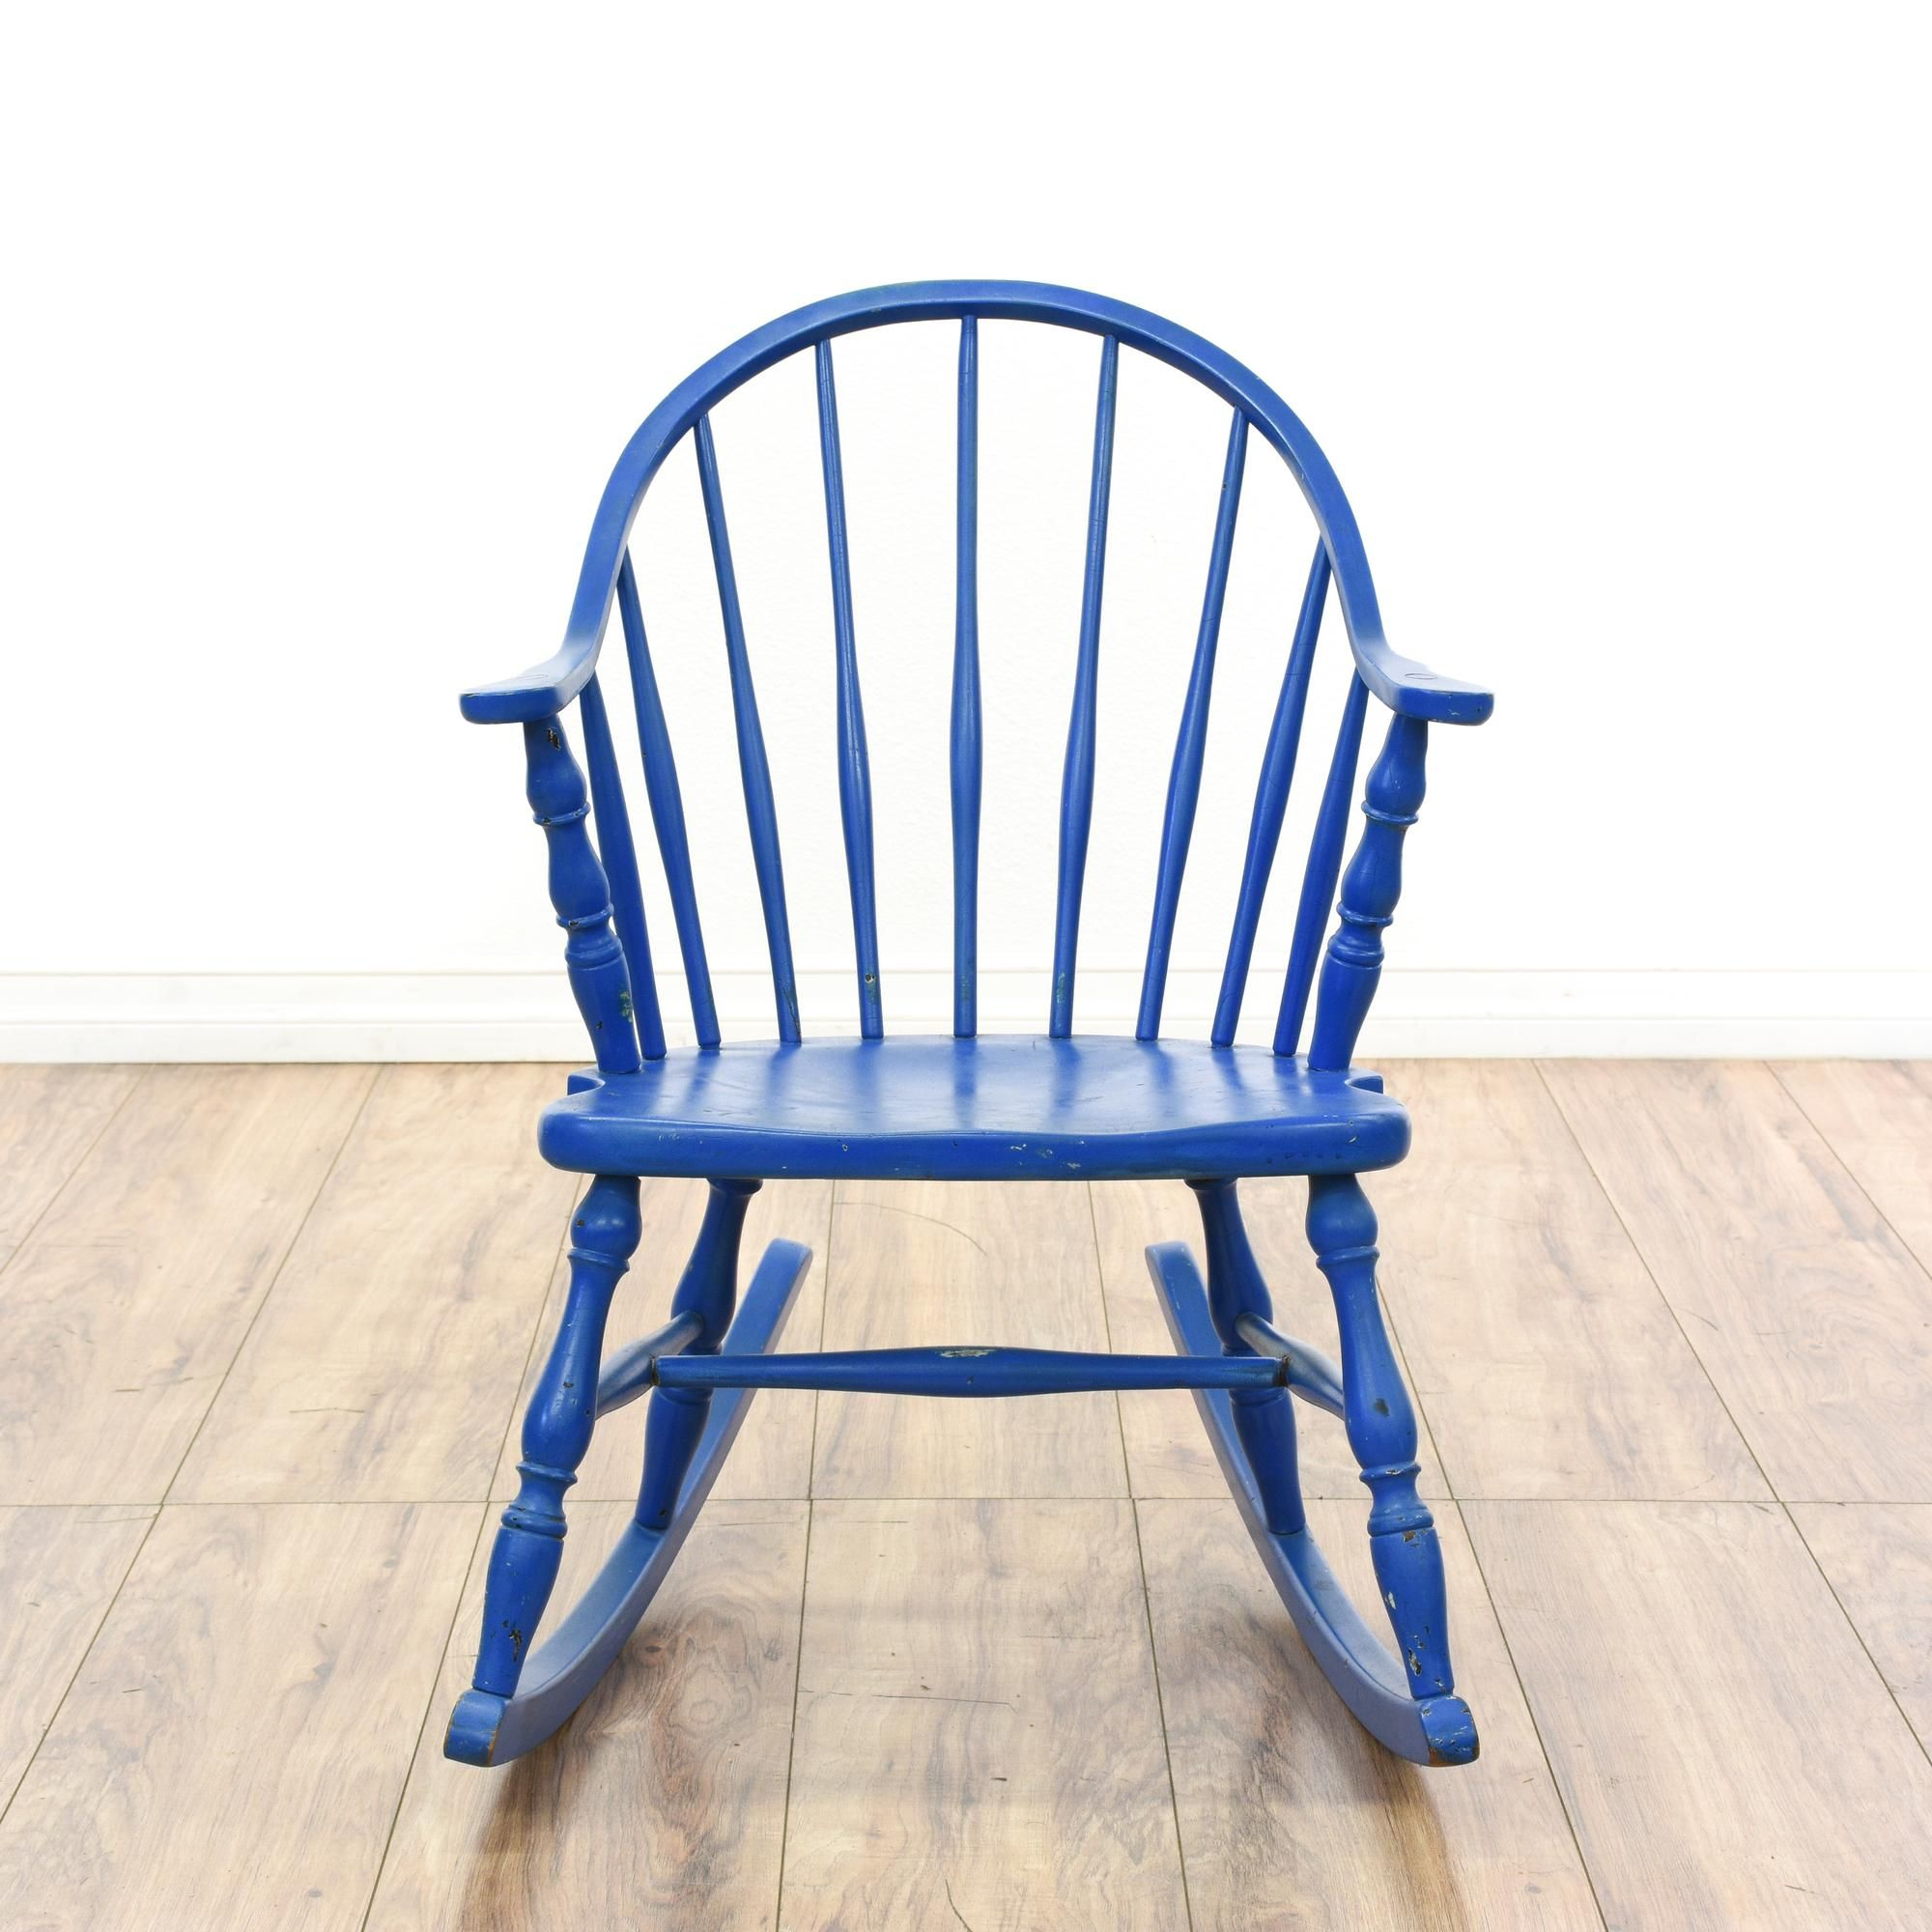 Shabby Chic Child's Blue Rocking Chair Blue rocking